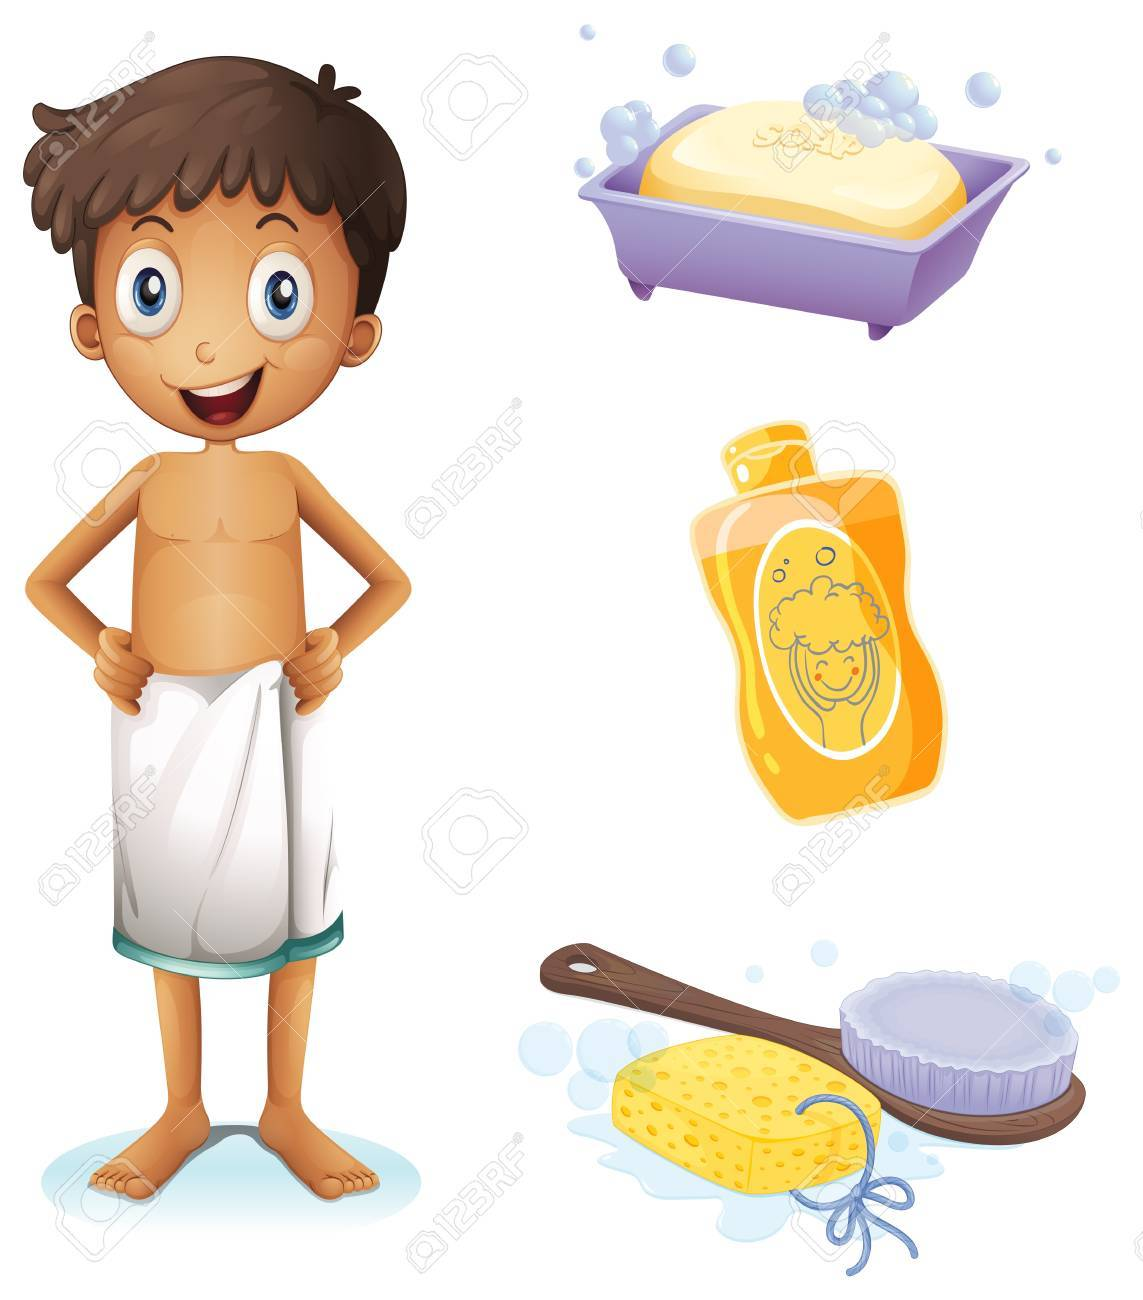 Illustration of a young man taking a bath on a white background Stock Vector - 20517965